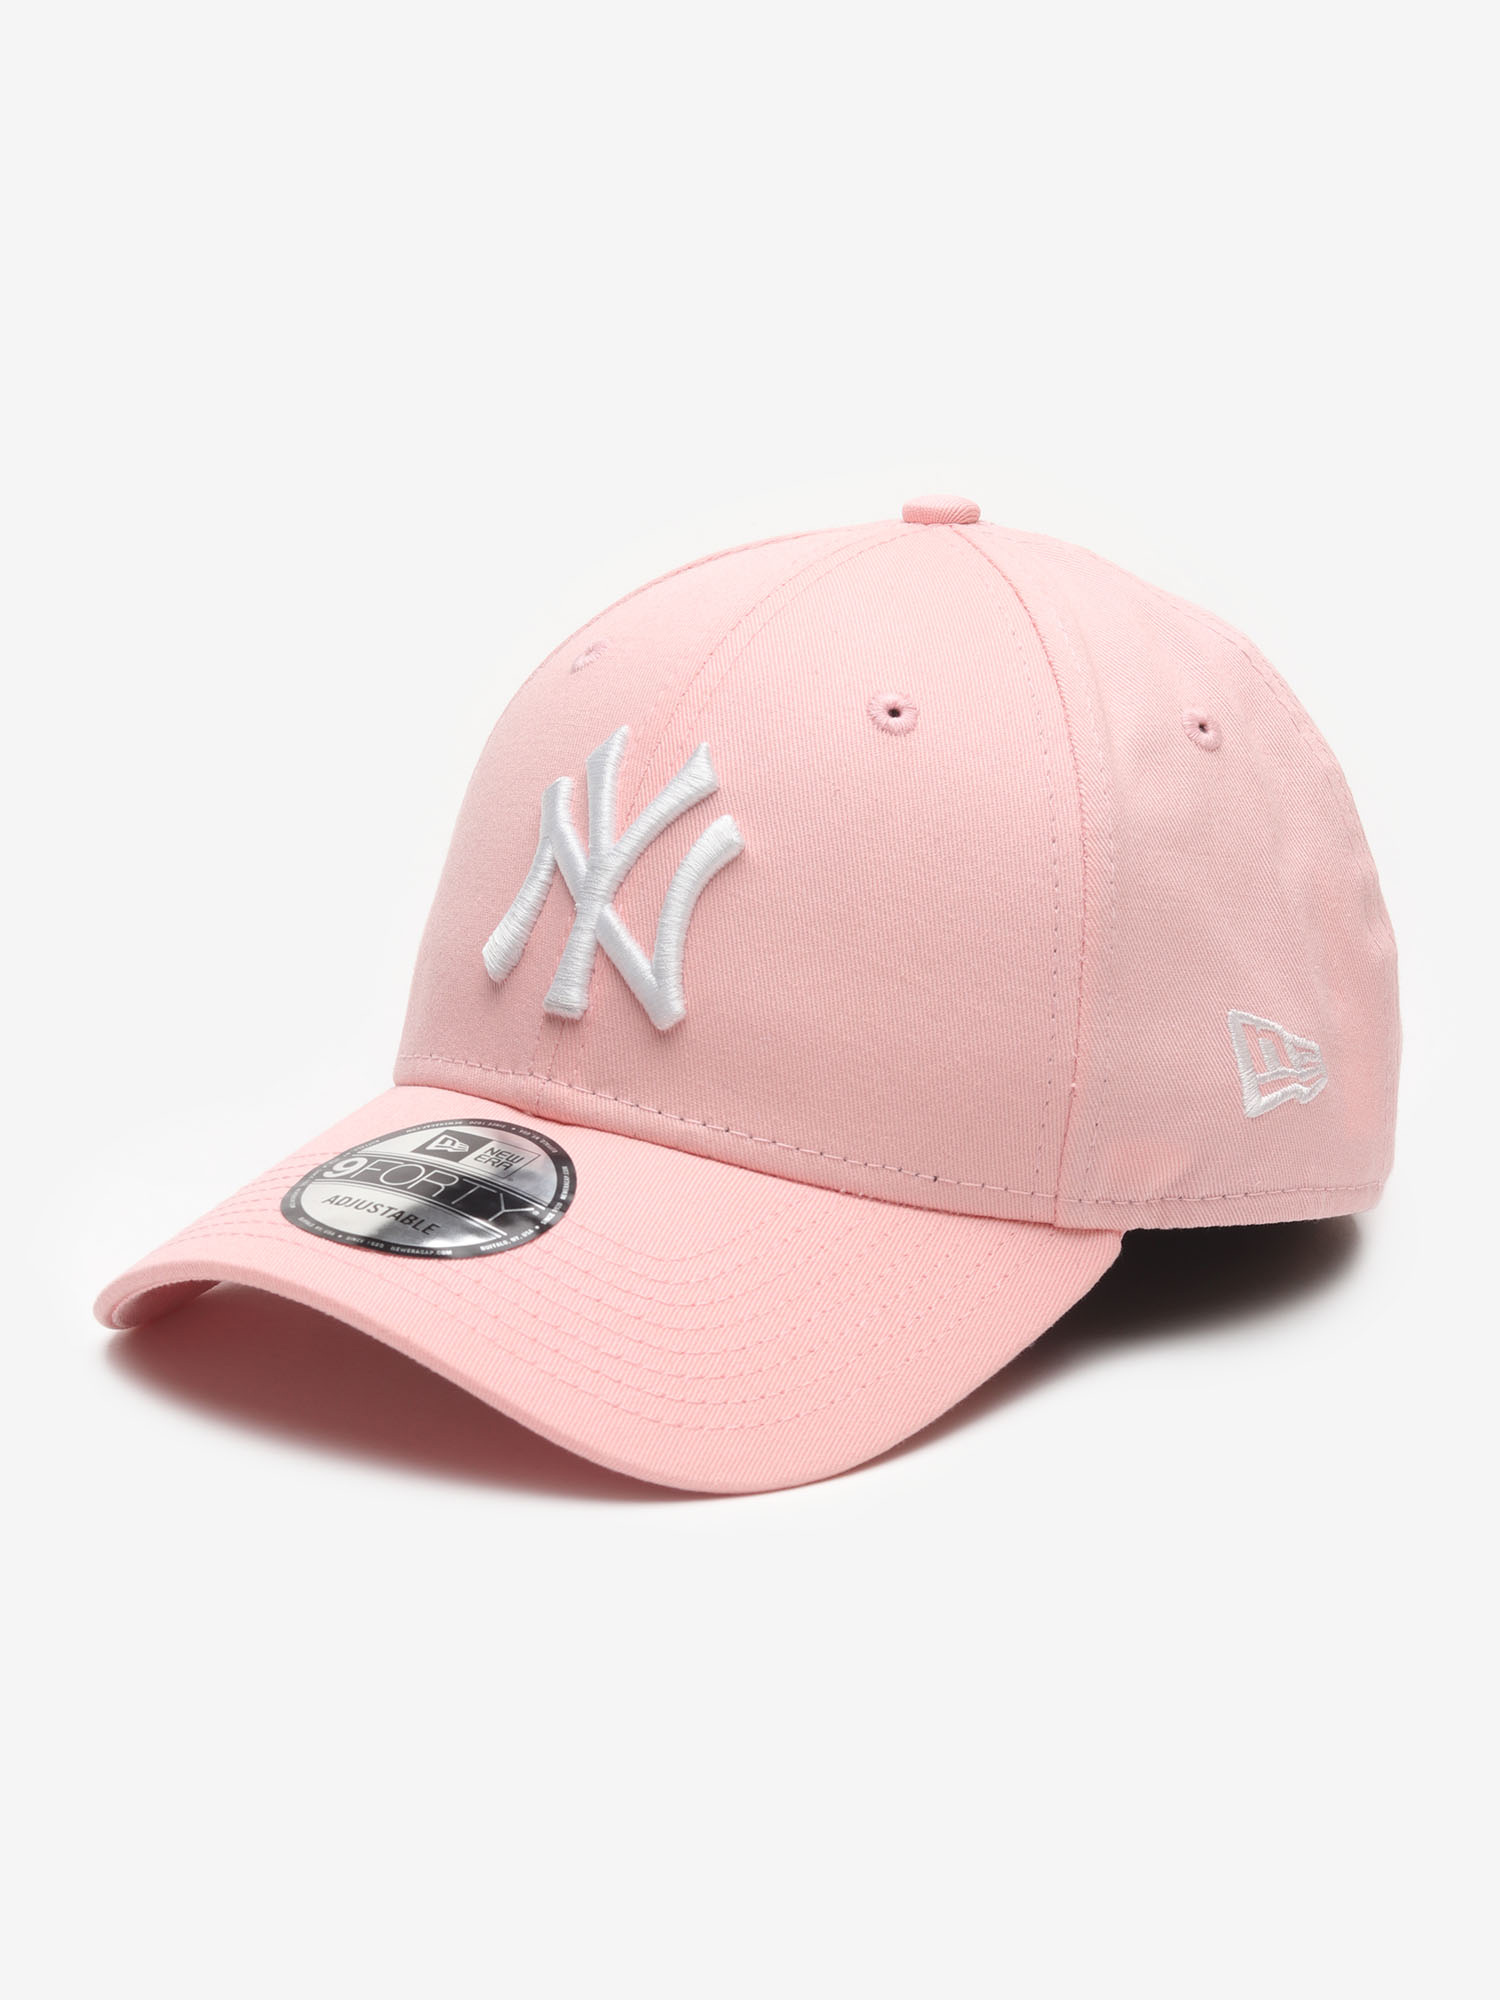 Kšiltovka New Era 940 MLB League essential NEYYAN Růžová